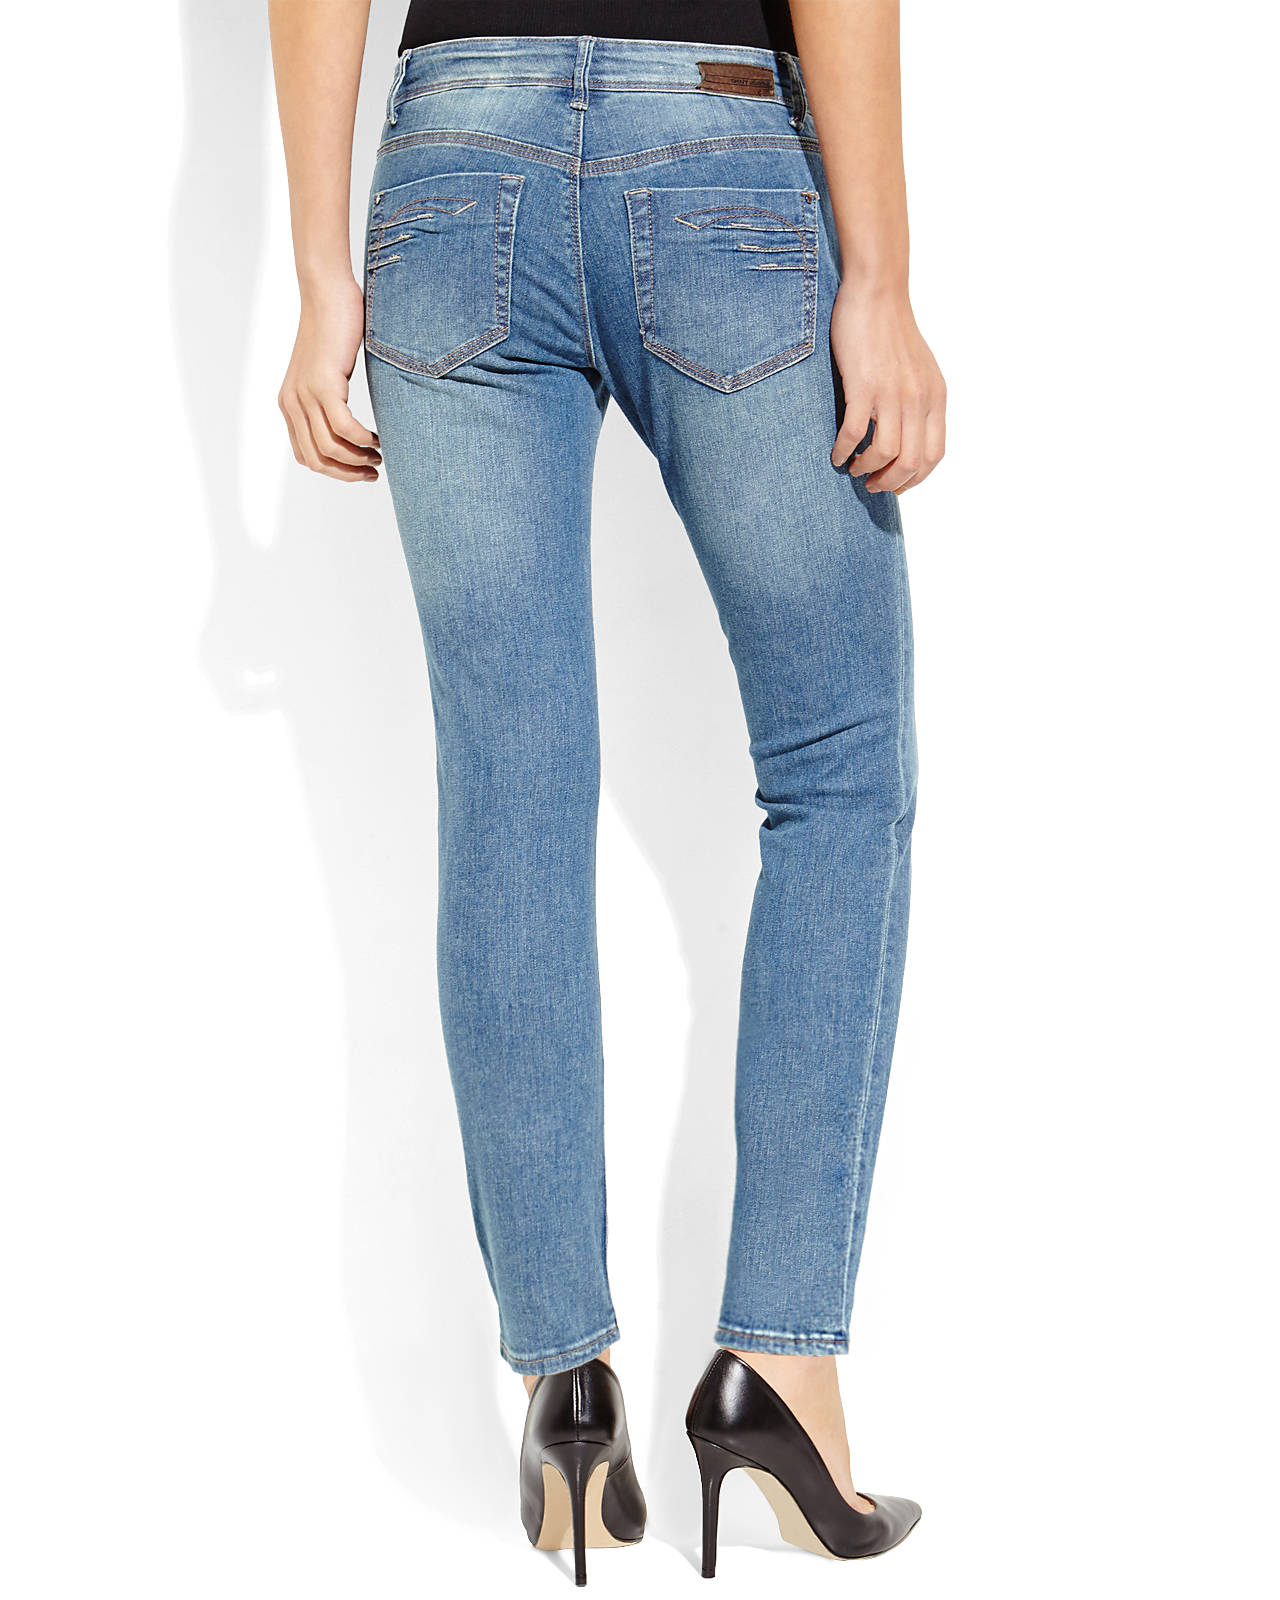 Dkny Petite Medium Wash City Skinny Jeans in Blue | Lyst